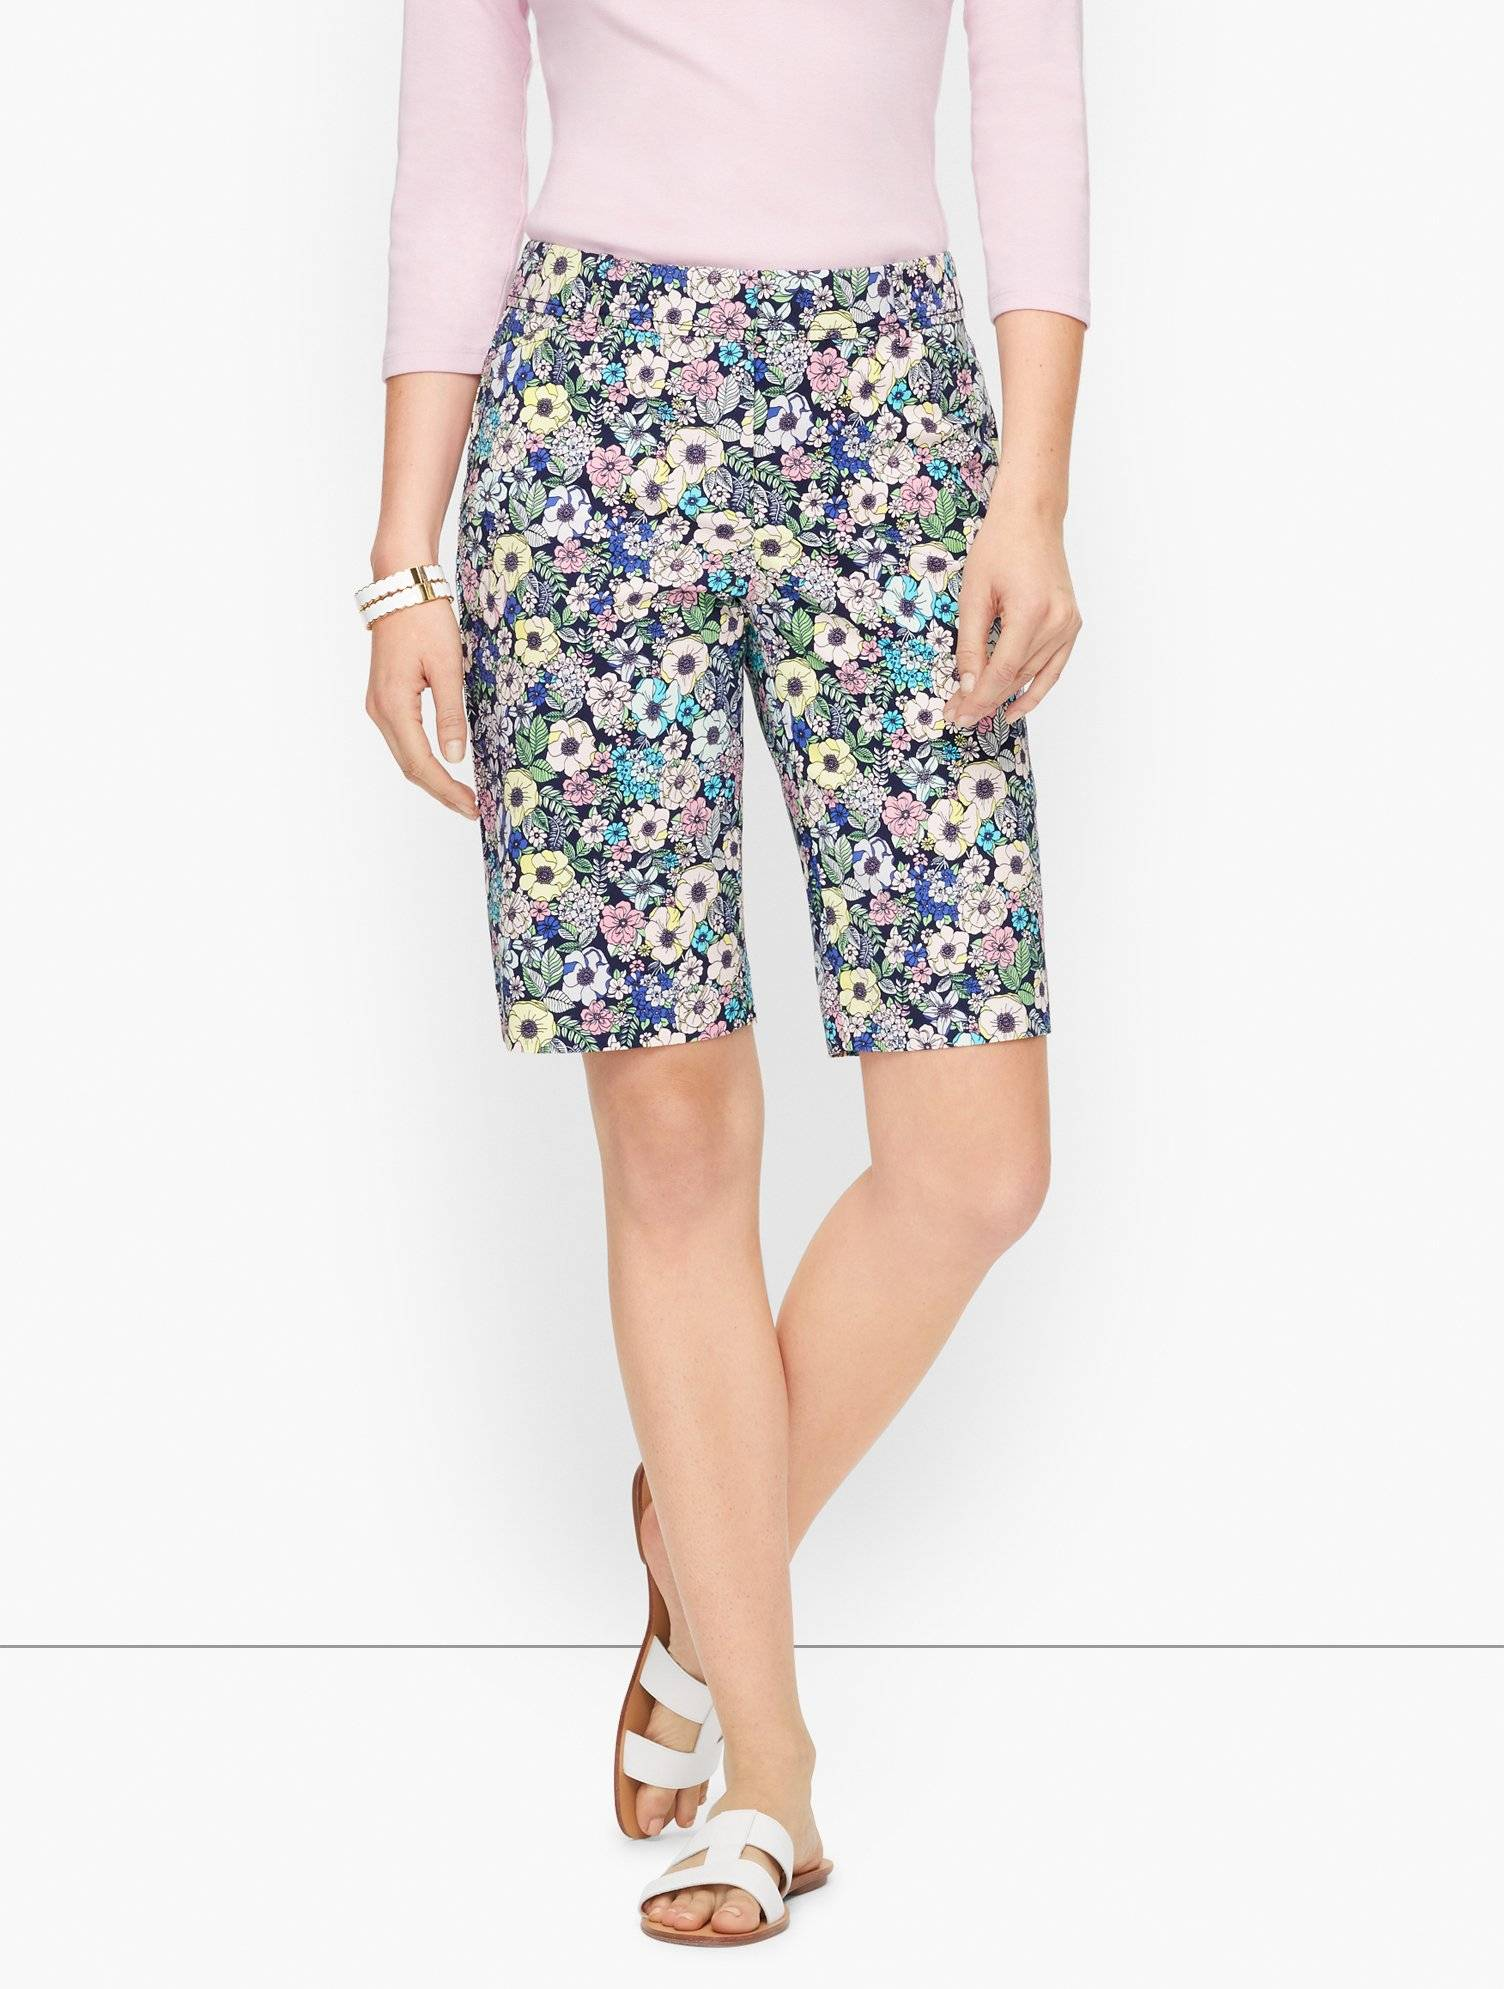 Talbots Perfect Bermuda Shorts - Lush Garden Print - Ink - 0 Talbots  - Ink - Size: female - Size: 0